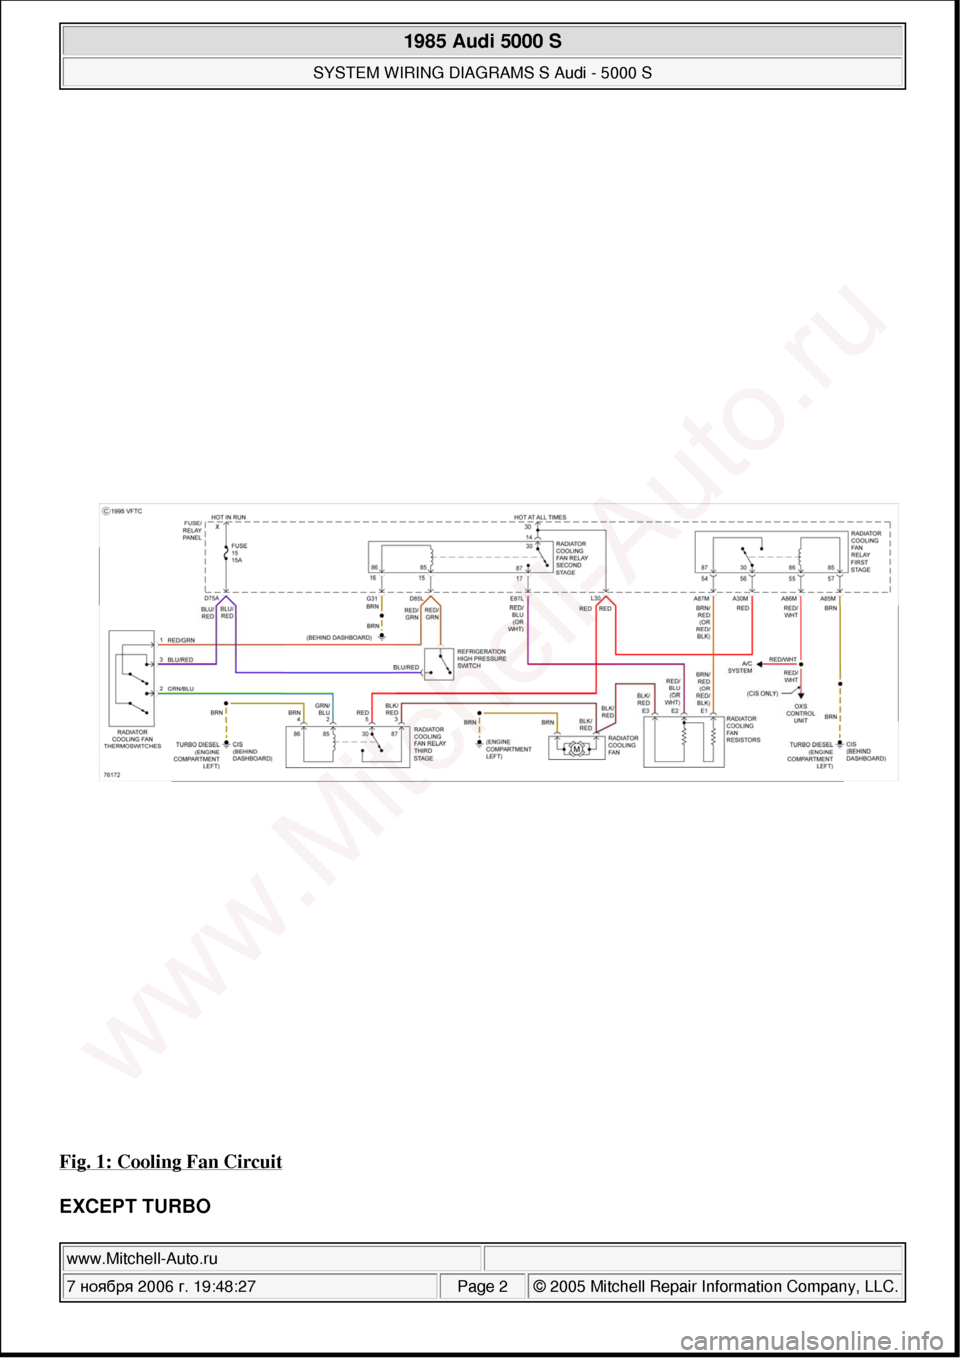 Audi 5000 Wiring Diagram Libraries Citroen C2 Mk2 Fuse Box 5000s 1985 System Diagramaudi 1